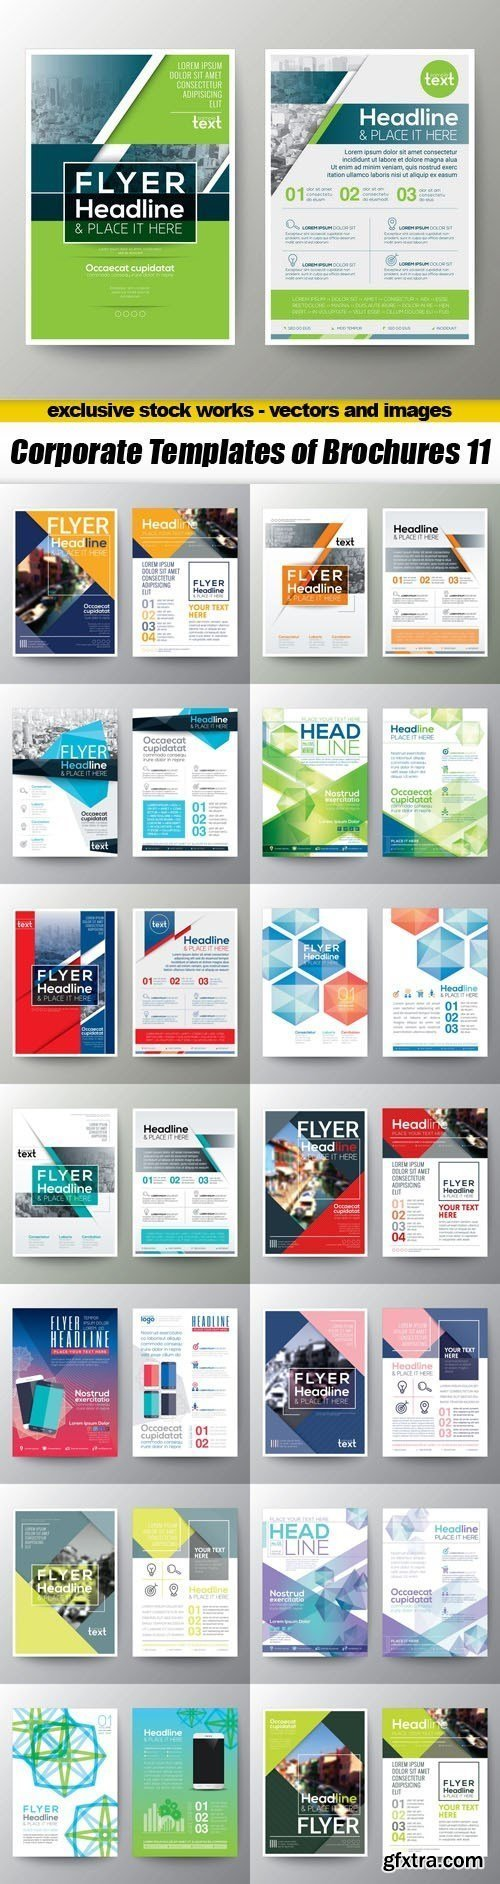 Corporate Templates of Brochures 11 - 15xEPS